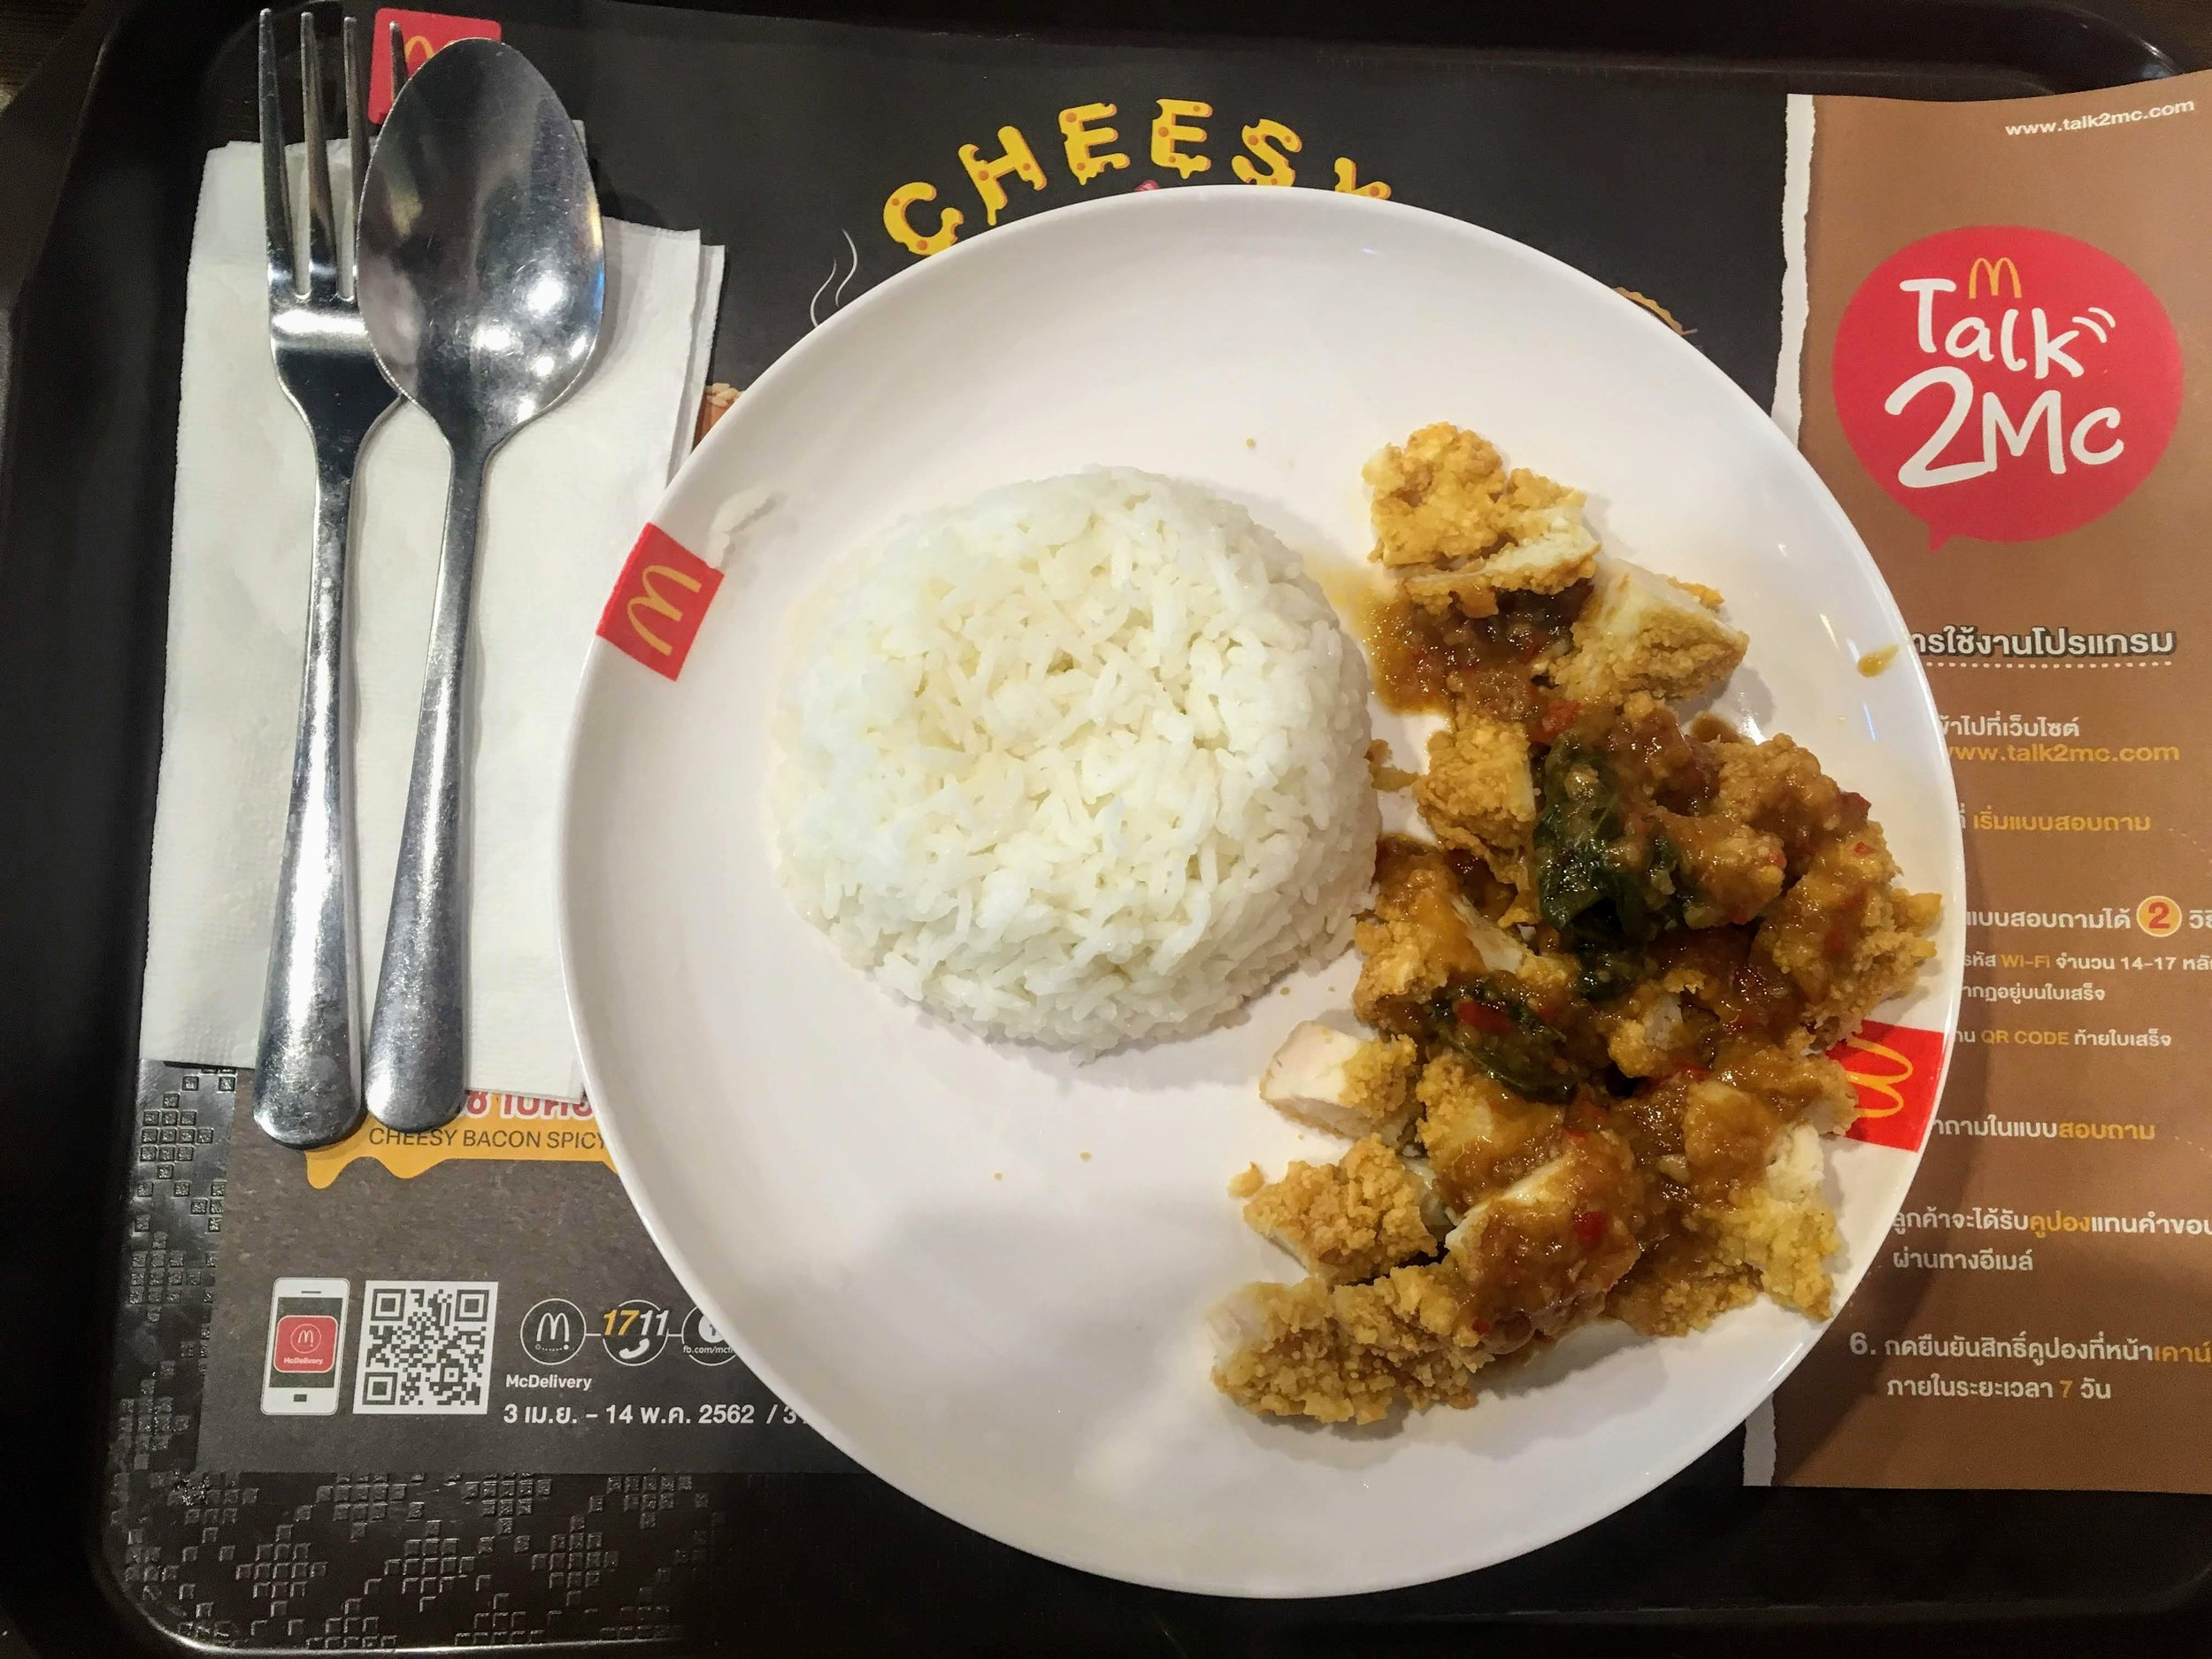 Kraprao Gai - basil fried chicken from McDonald's Thailand